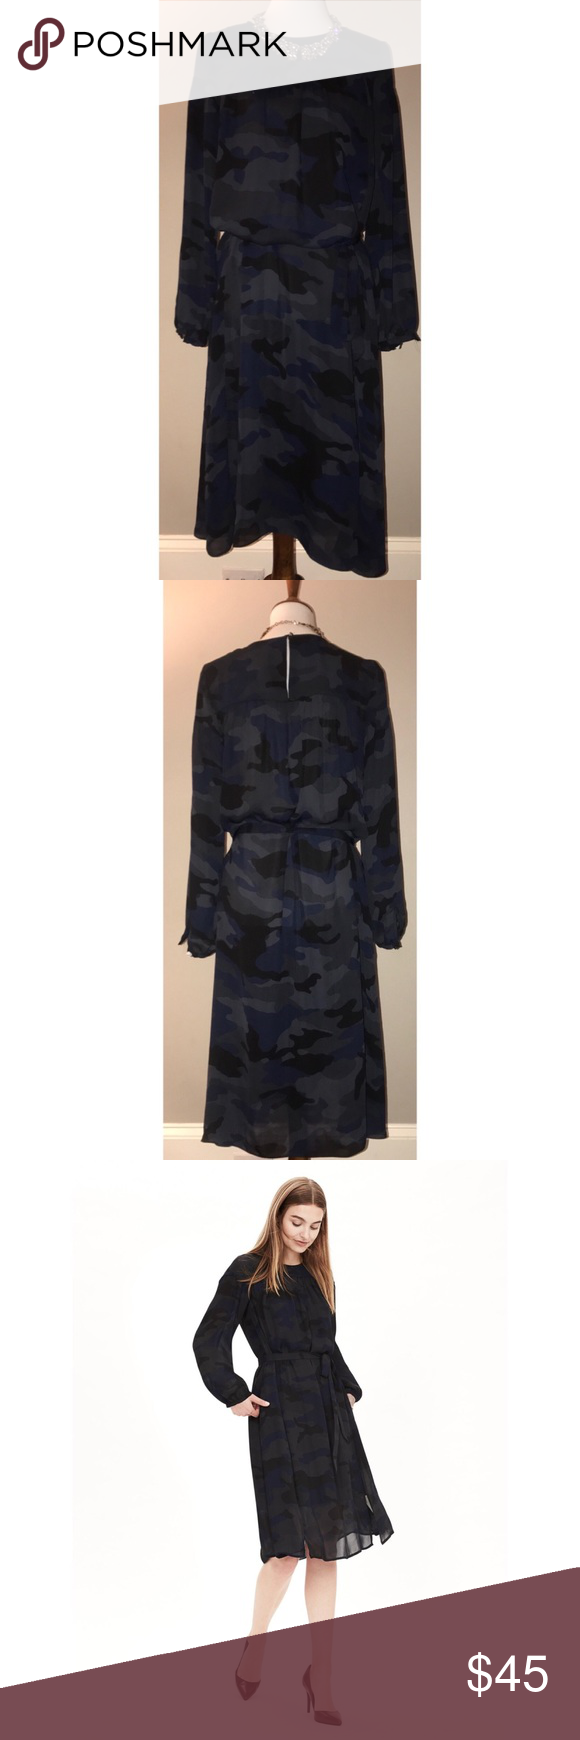 Banana Republic $45 NWT Blue Camo Print Dress A camo print adds the right amount of edge to our shirred shirtdress. High neckline. Long sleeves with silver spike buttoned cuffs. Shirred yoke. Buttoned keyhole at back (also has the cute spike button detailing). Ties at the waist. Sheer poly. Requires a slip underneath (not included).  Retails $138. Banana Republic Dresses